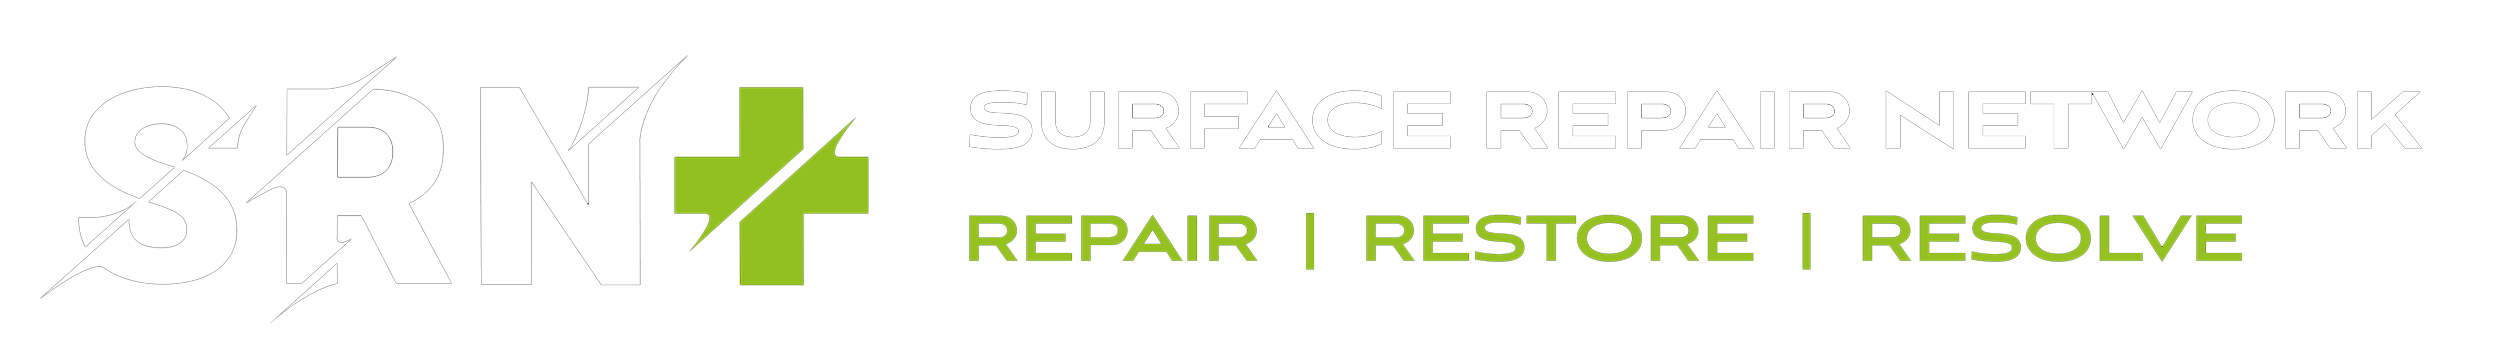 Surface Repair Network